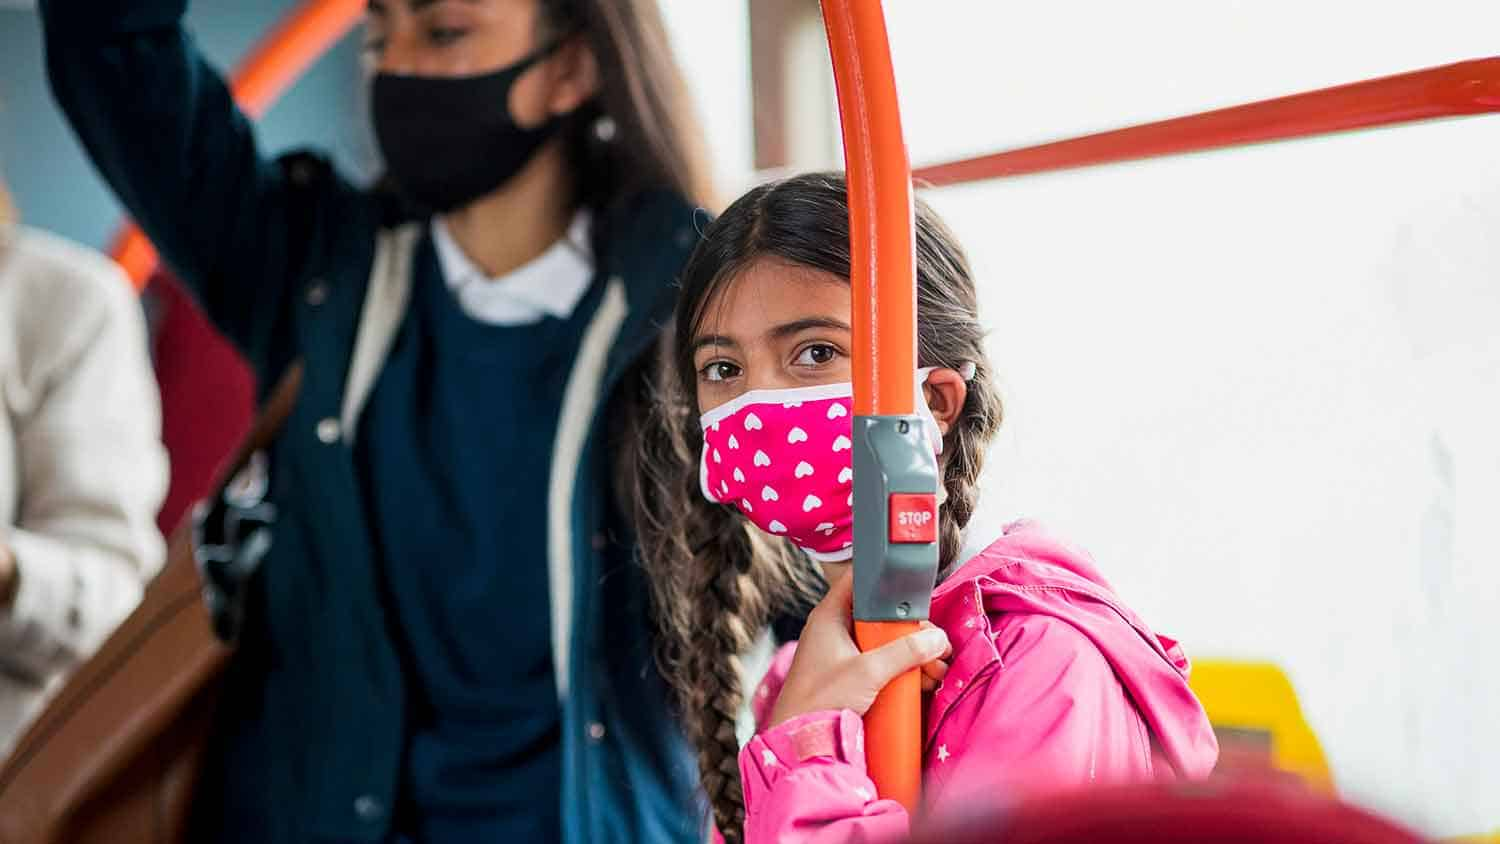 Child in a mask on a bus